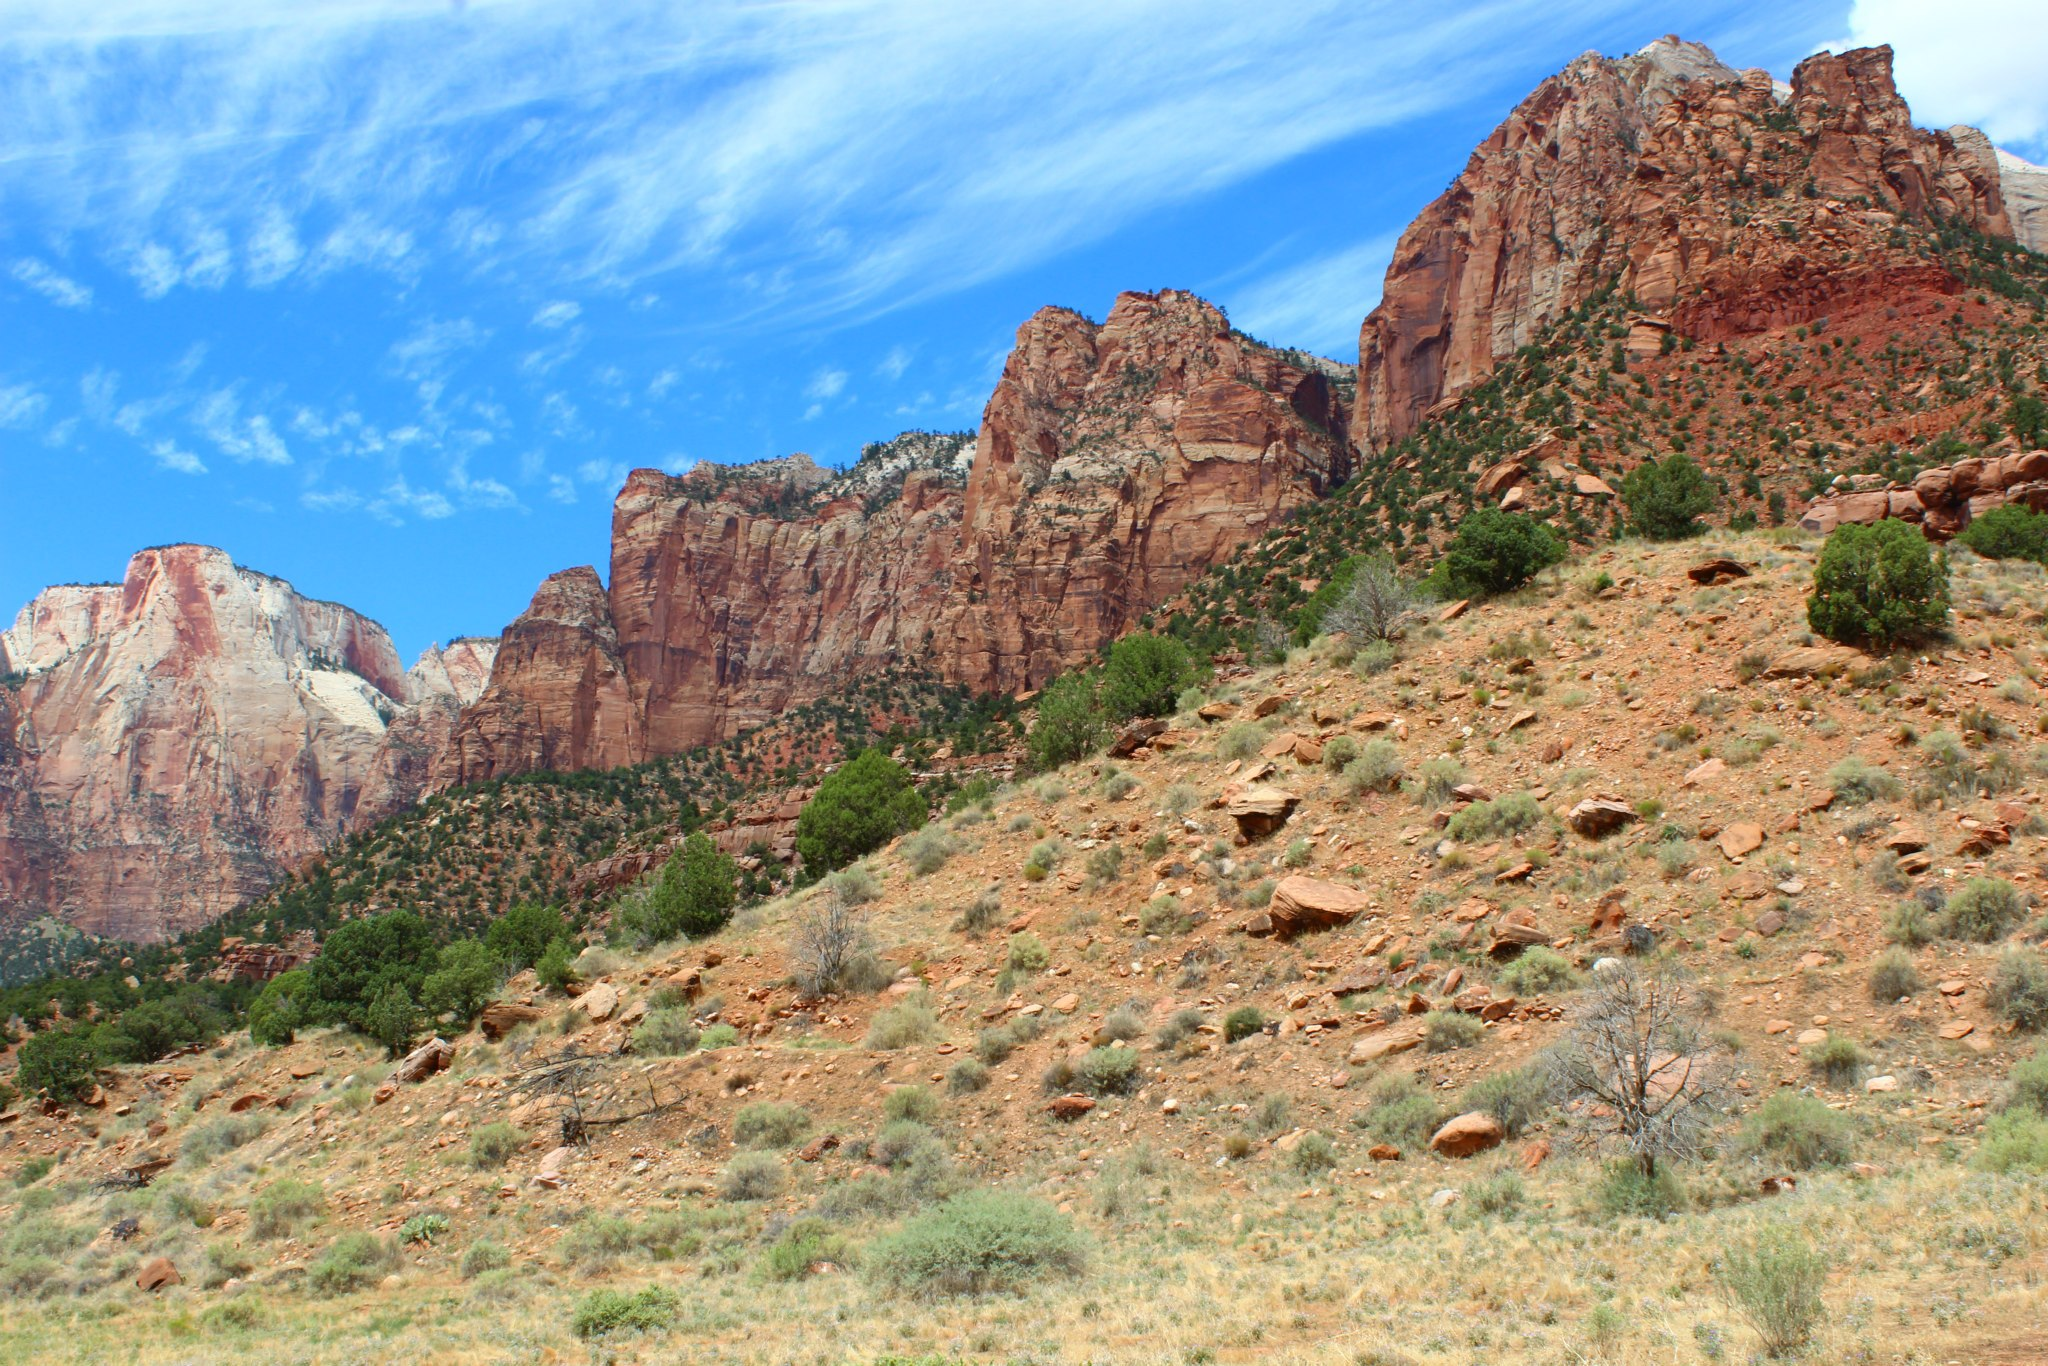 Zion National Park Image